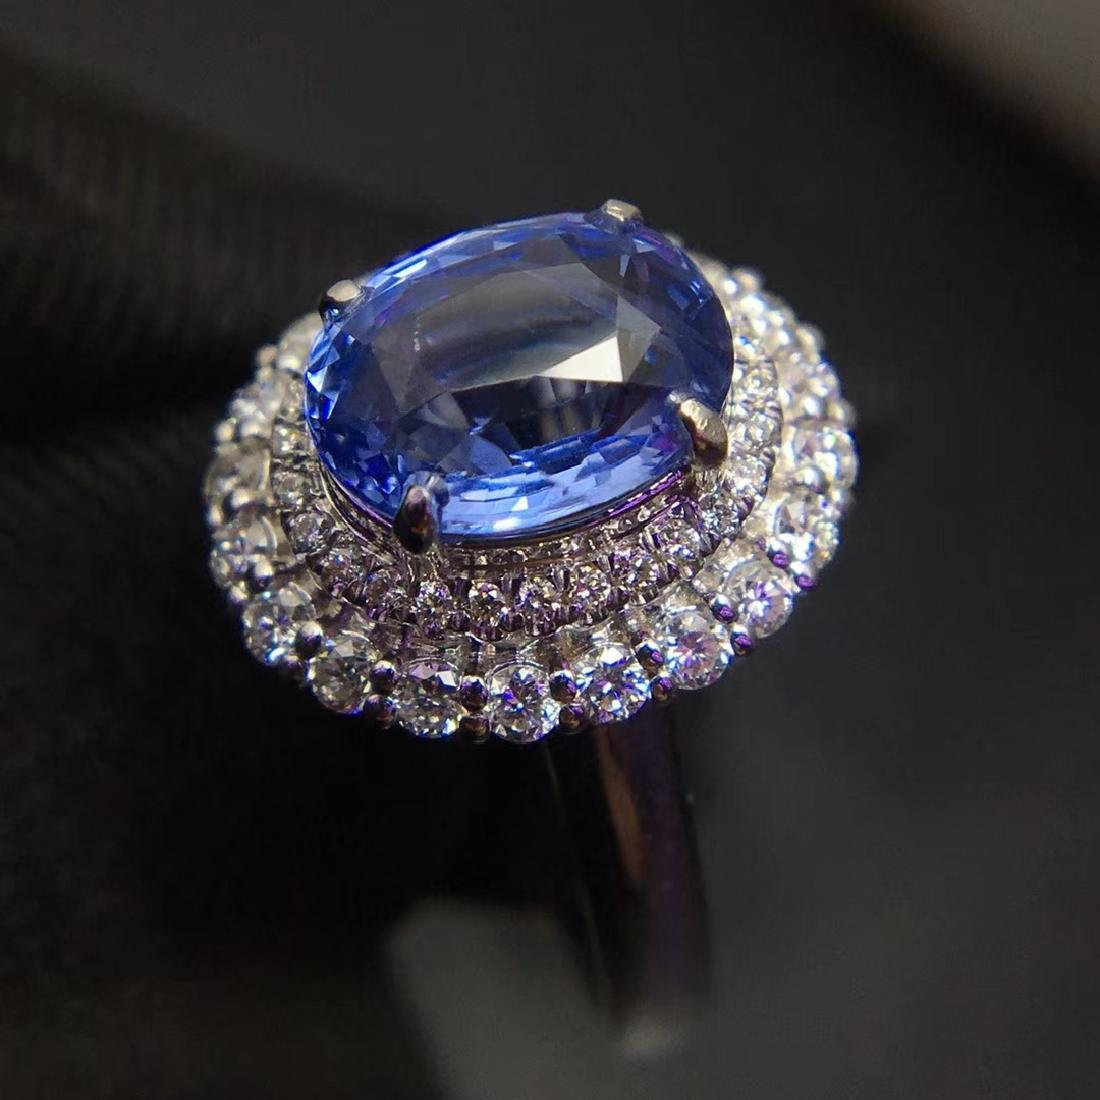 2.59ct Sapphire Ring in 18kt White Gold - 4